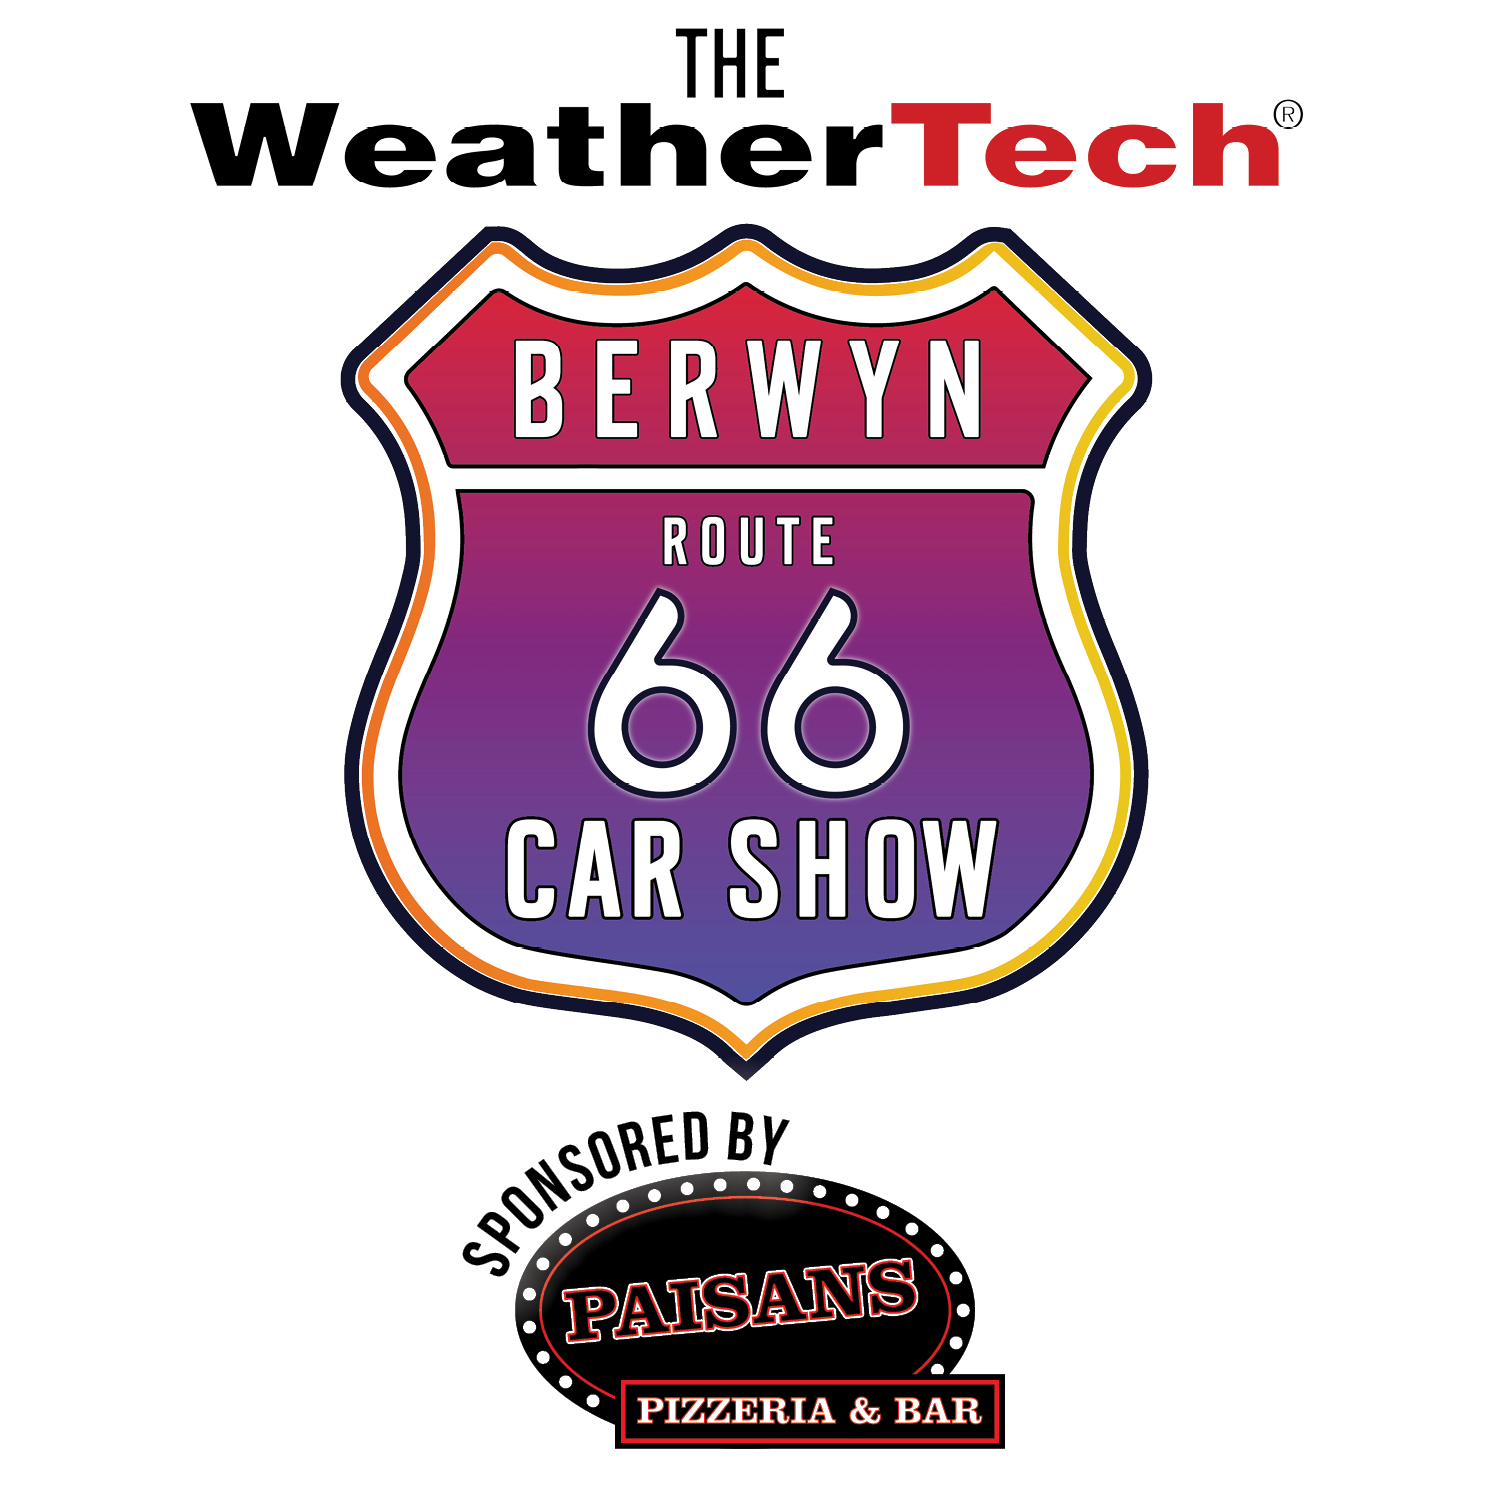 The WeatherTech Berwyn Rt66 Car Show sponsored by Paisans Pizzeria